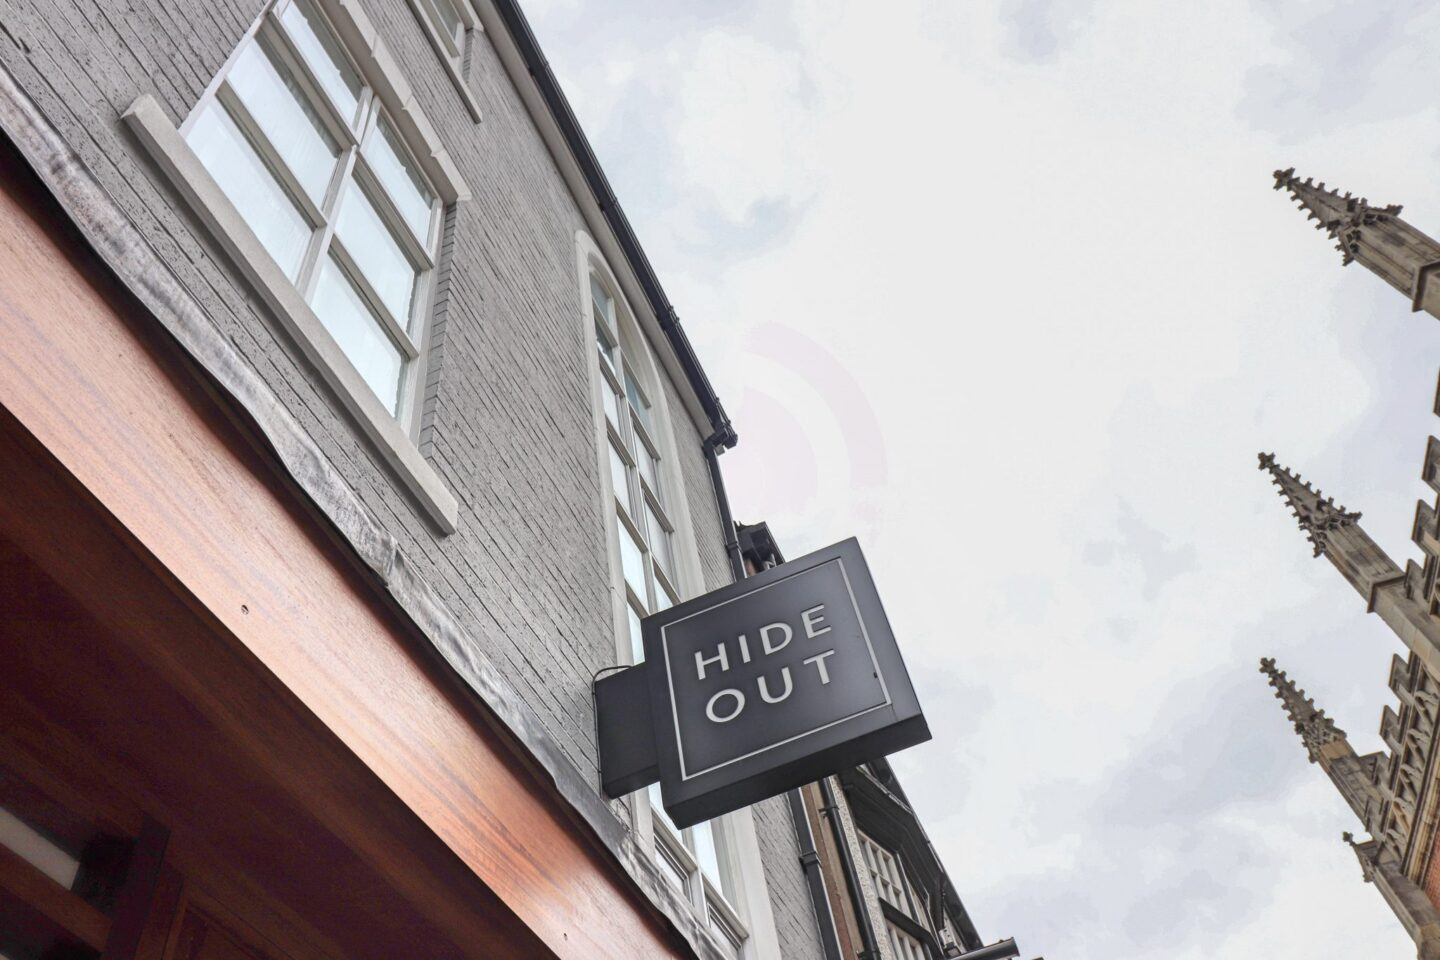 England: Hiding Out at The HIDEOUT Hotel, Hull